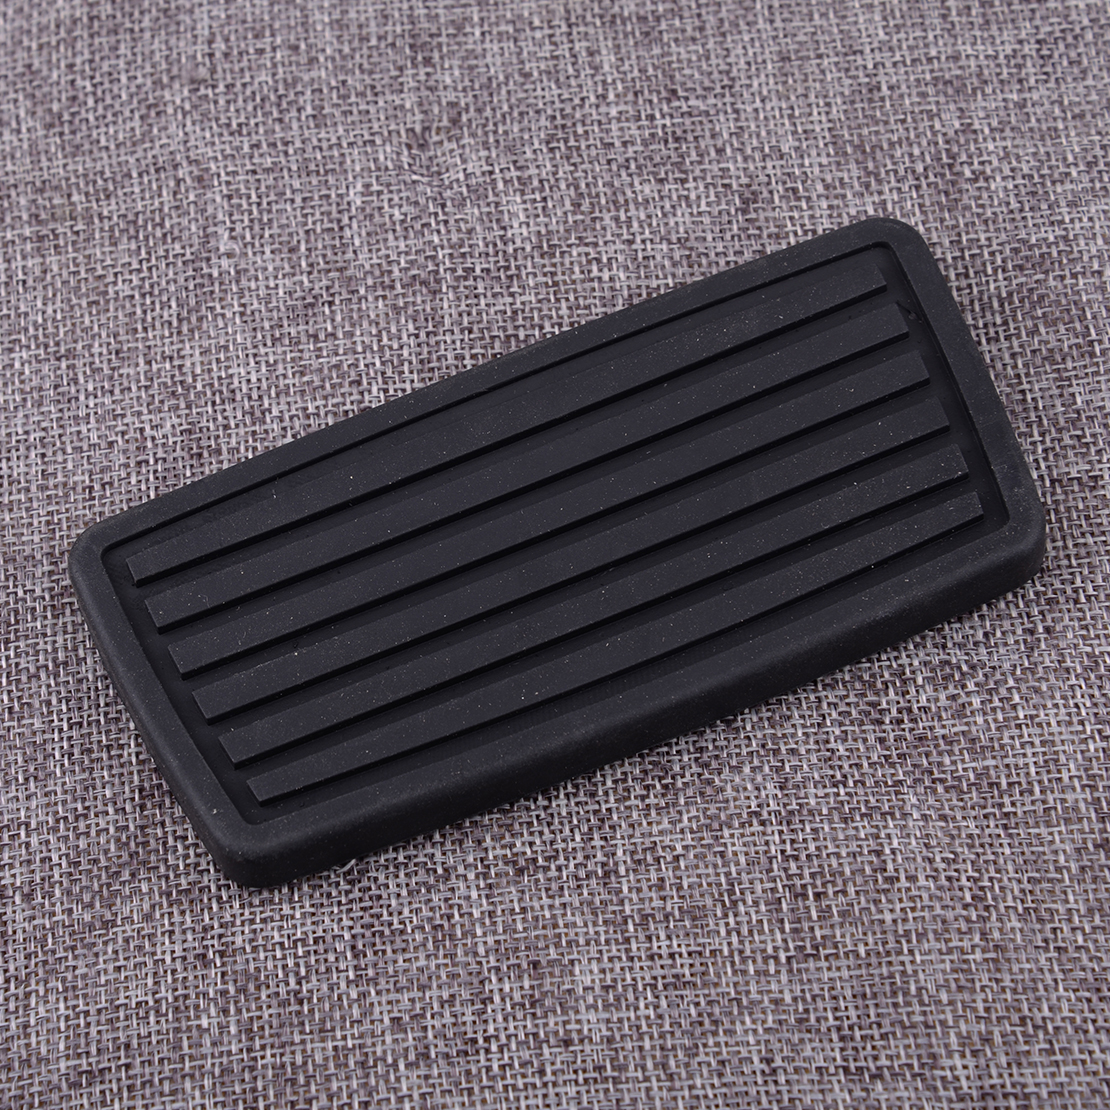 13x6cm Automotic Brake Pedal Pad Cover Trim Fit For Honda